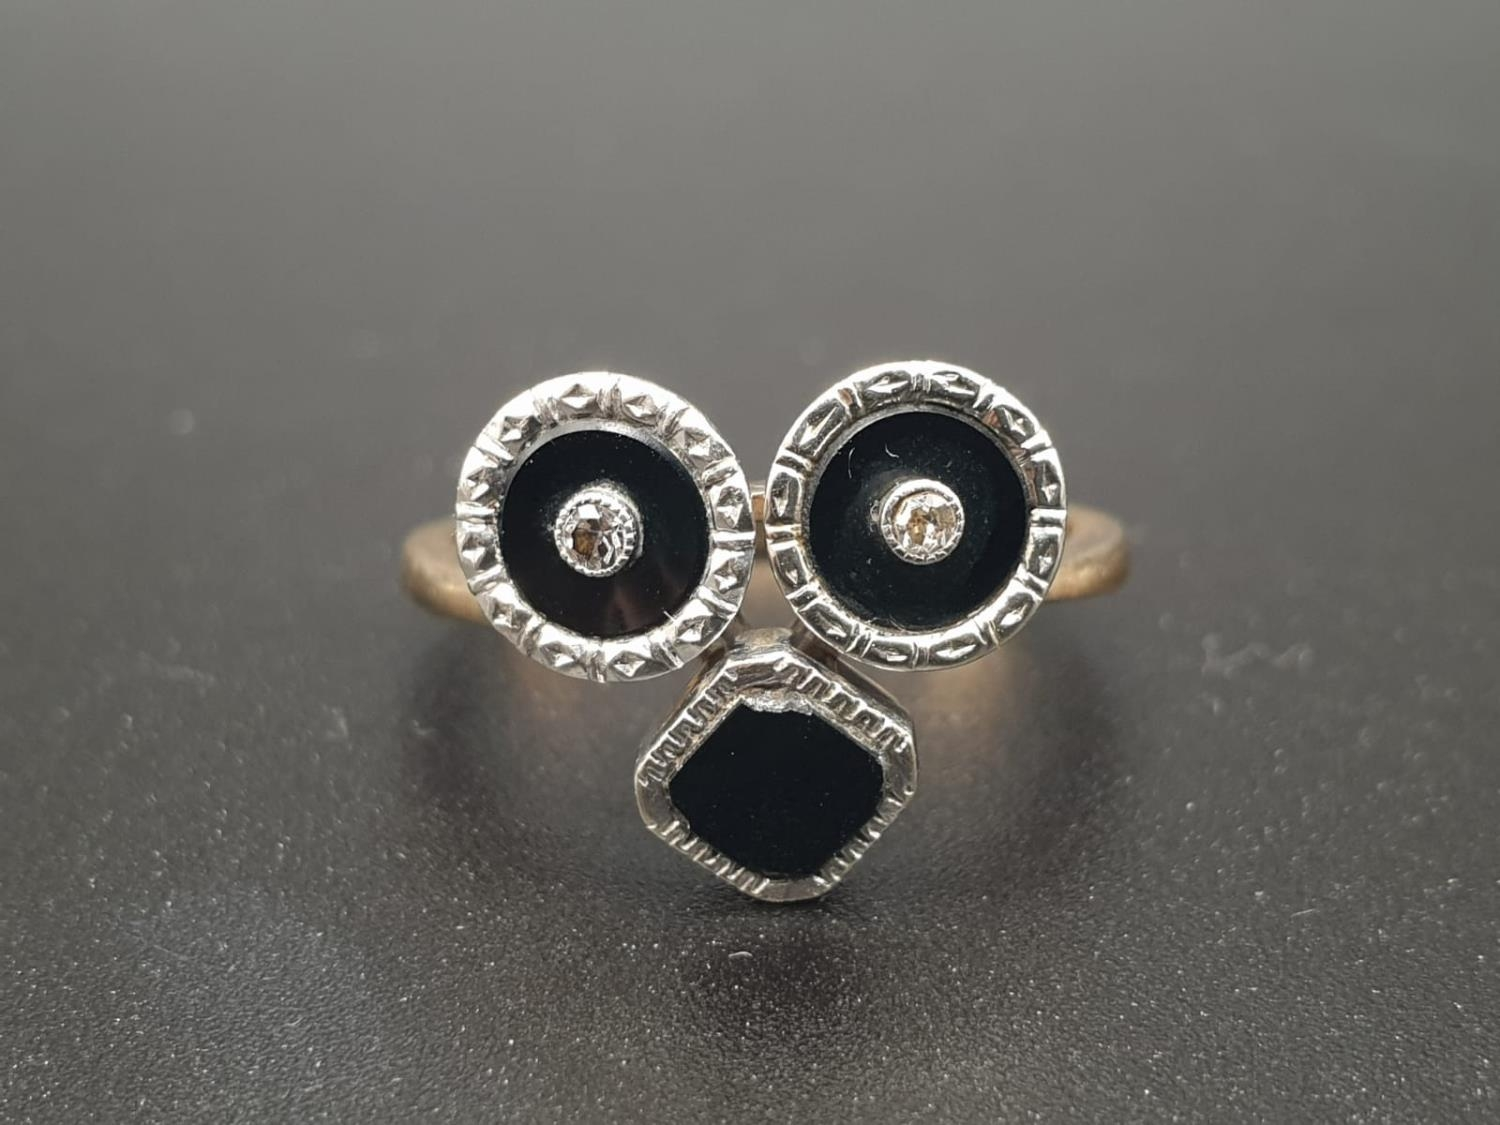 A 9K GOLD RING WITH BLACK ENAMEL AND DIAMONDS USED TO FORM THE SHAPE OF A FACE. 3.3gms size O